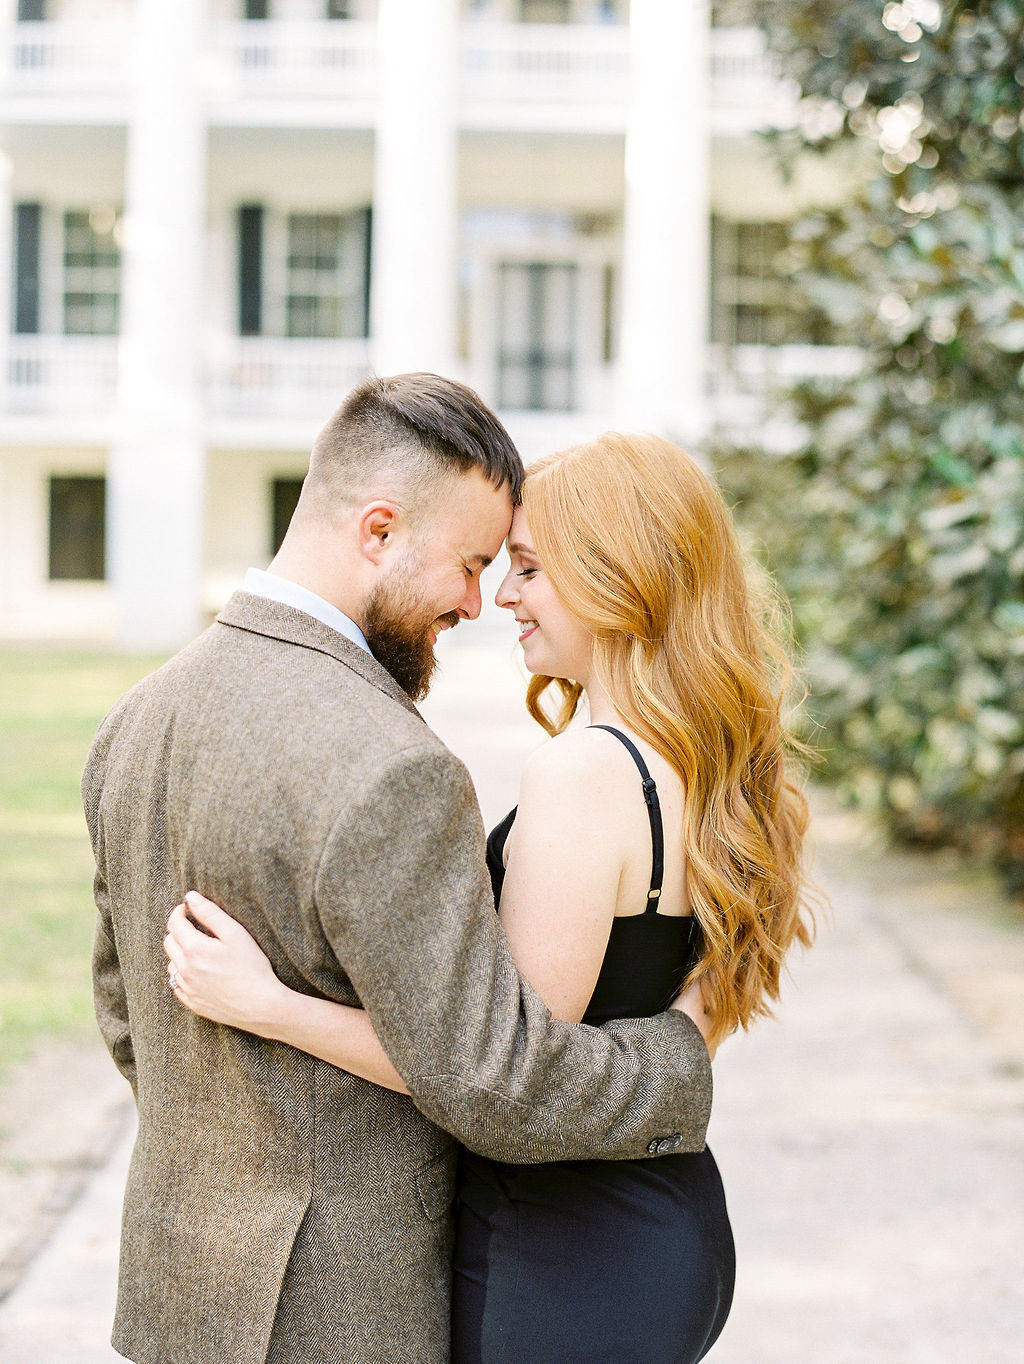 CourtneyPrice-Emma&RyanFilm-8